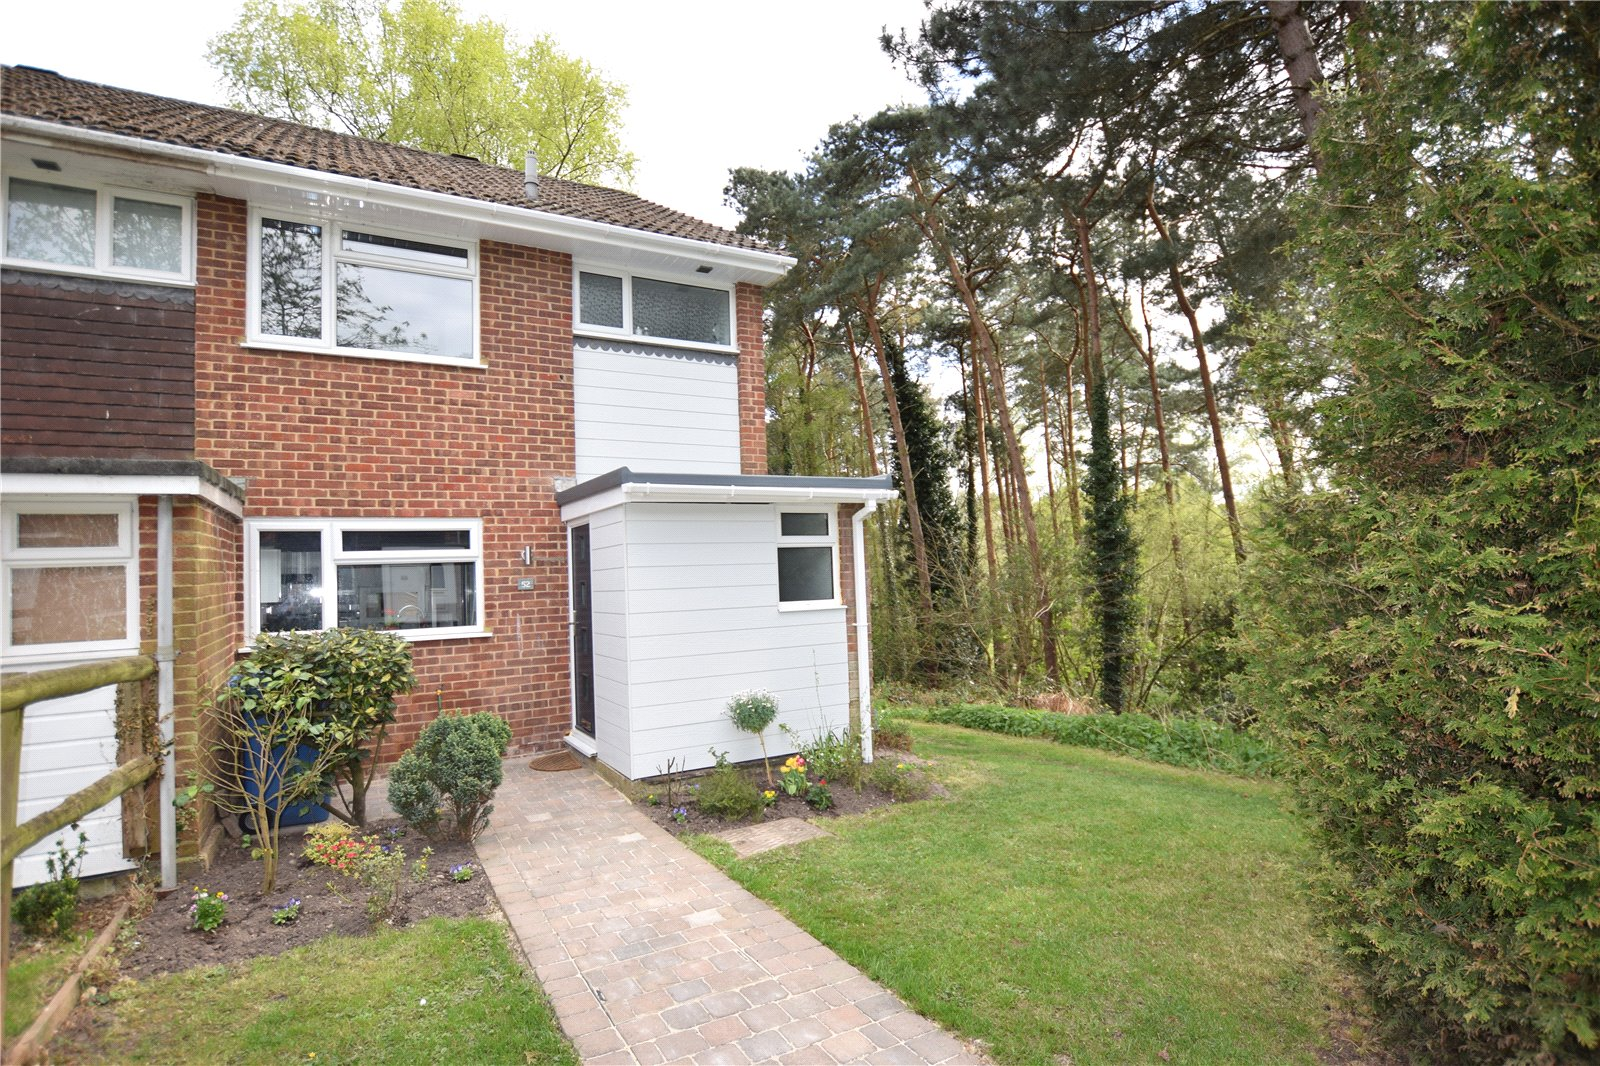 3 Bedrooms End Of Terrace House for sale in Holland Pines, Bracknell, Berkshire, RG12